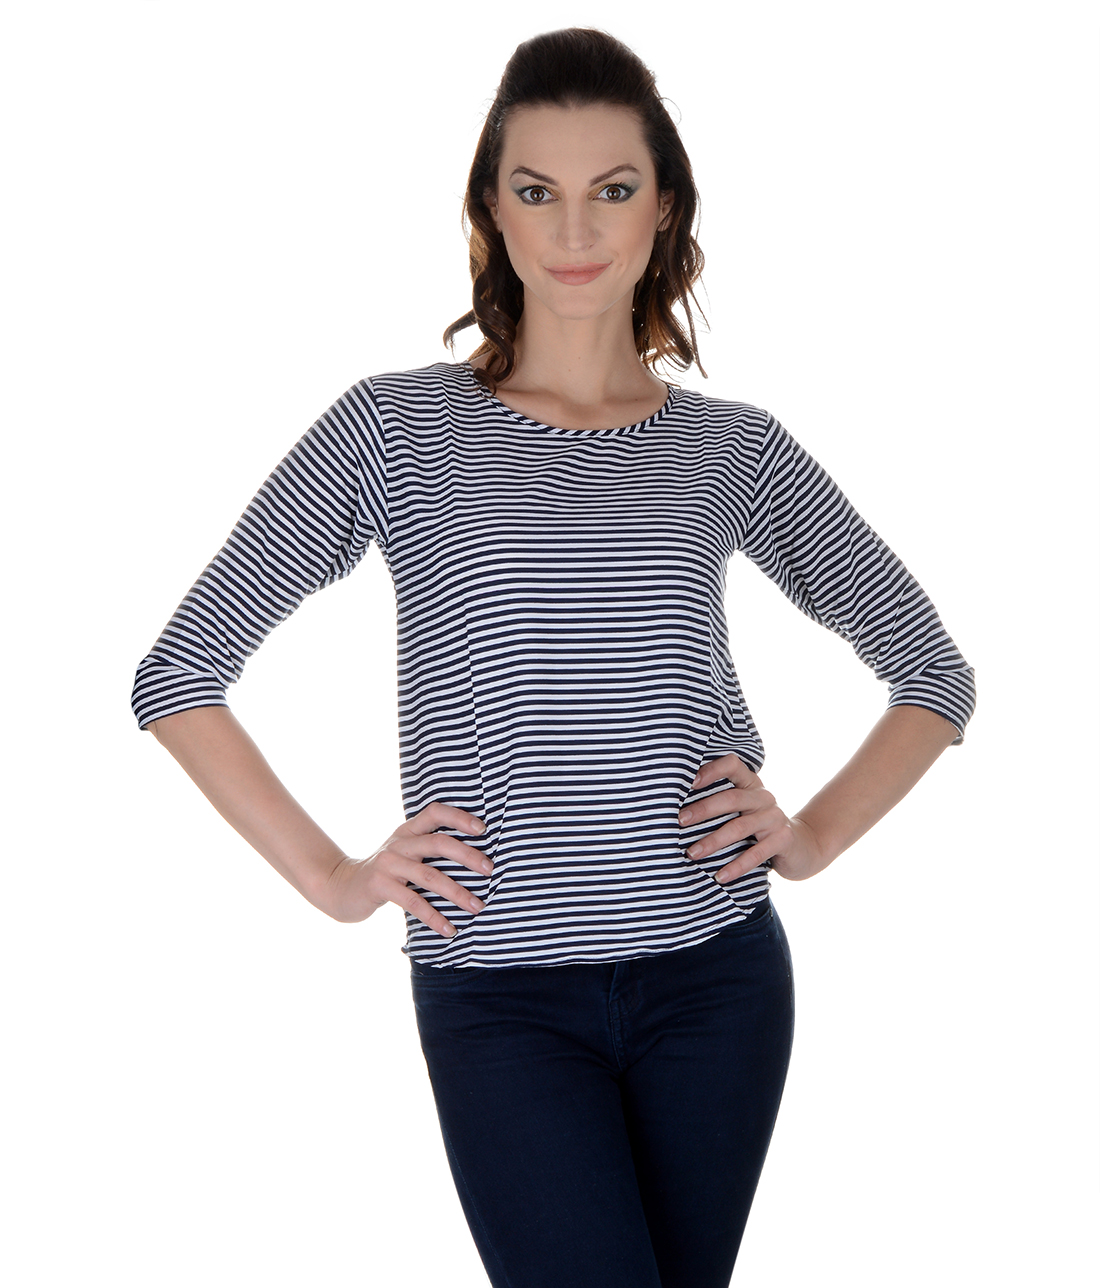 Funku Fashion Casual 3/4th Sleeve Striped Women's Black, White Top